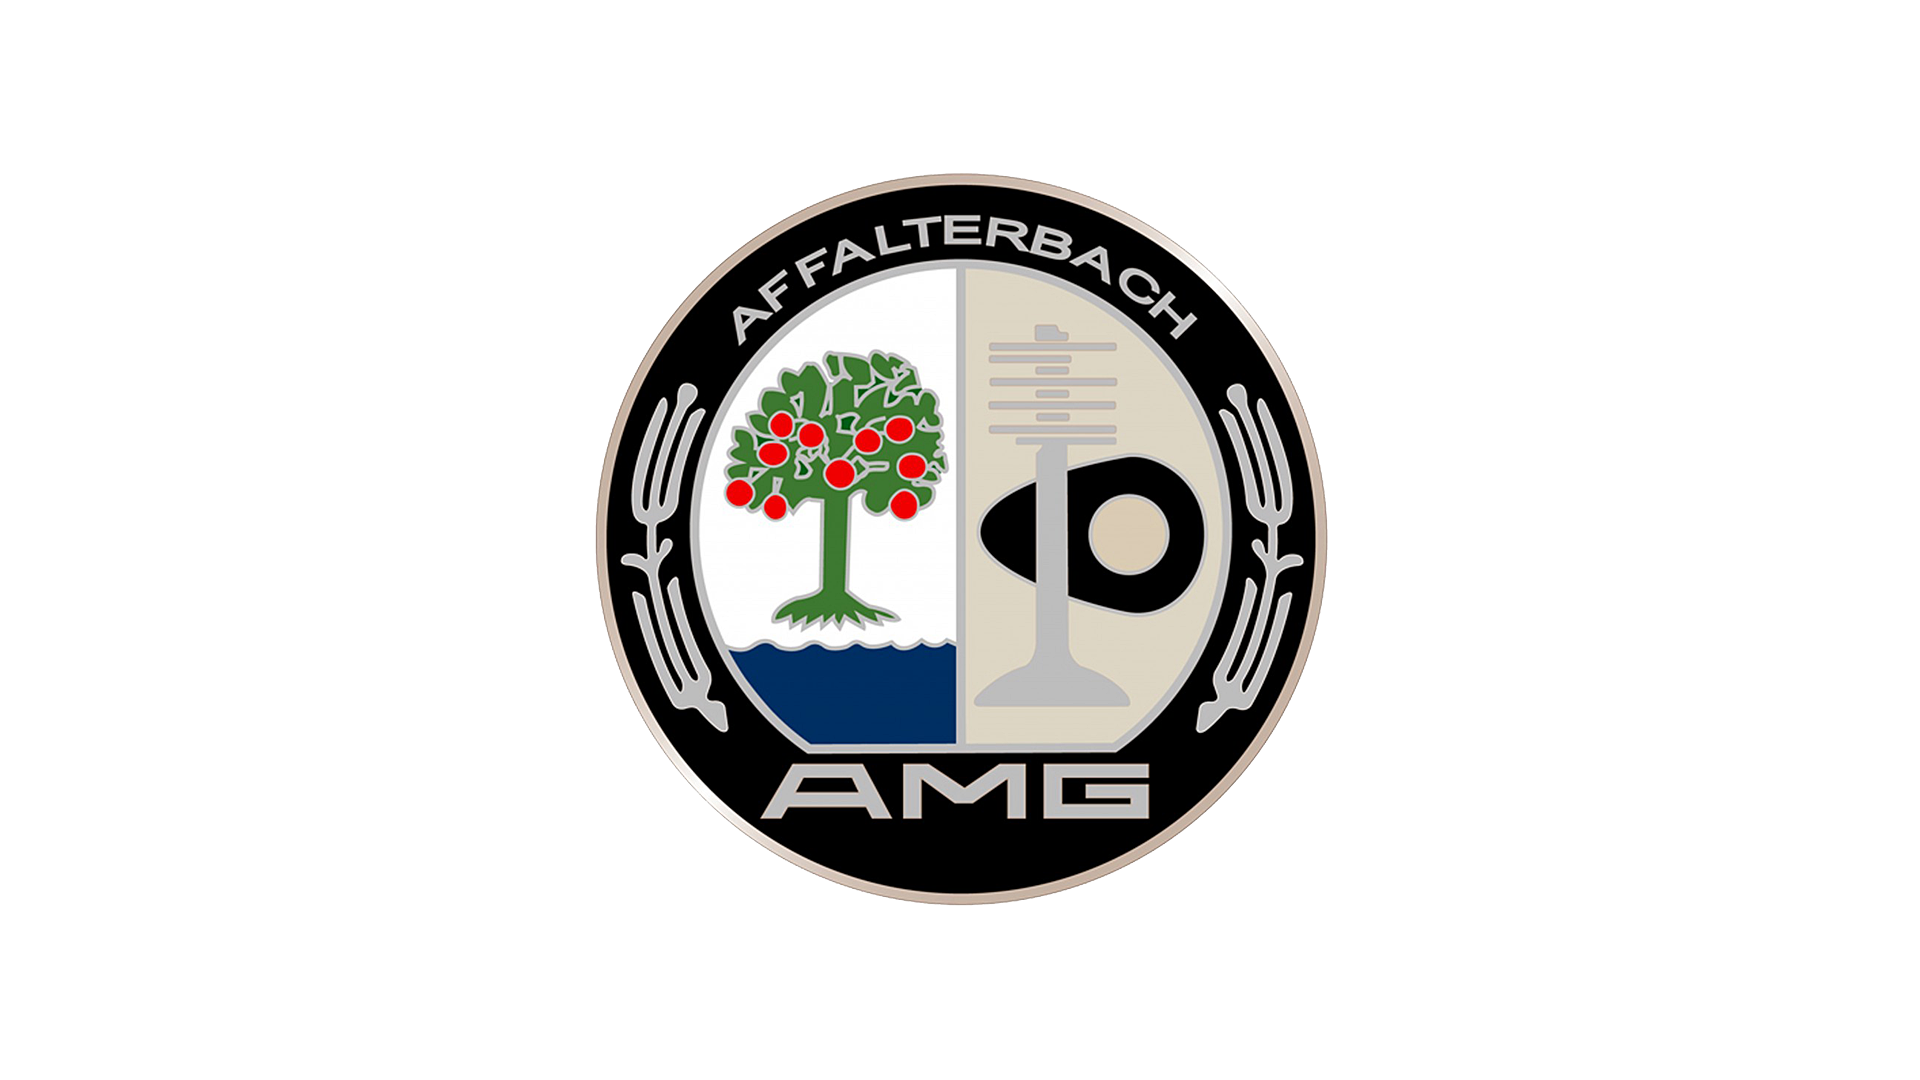 Photo Collection Amg Logo Pictures To 1920x1080